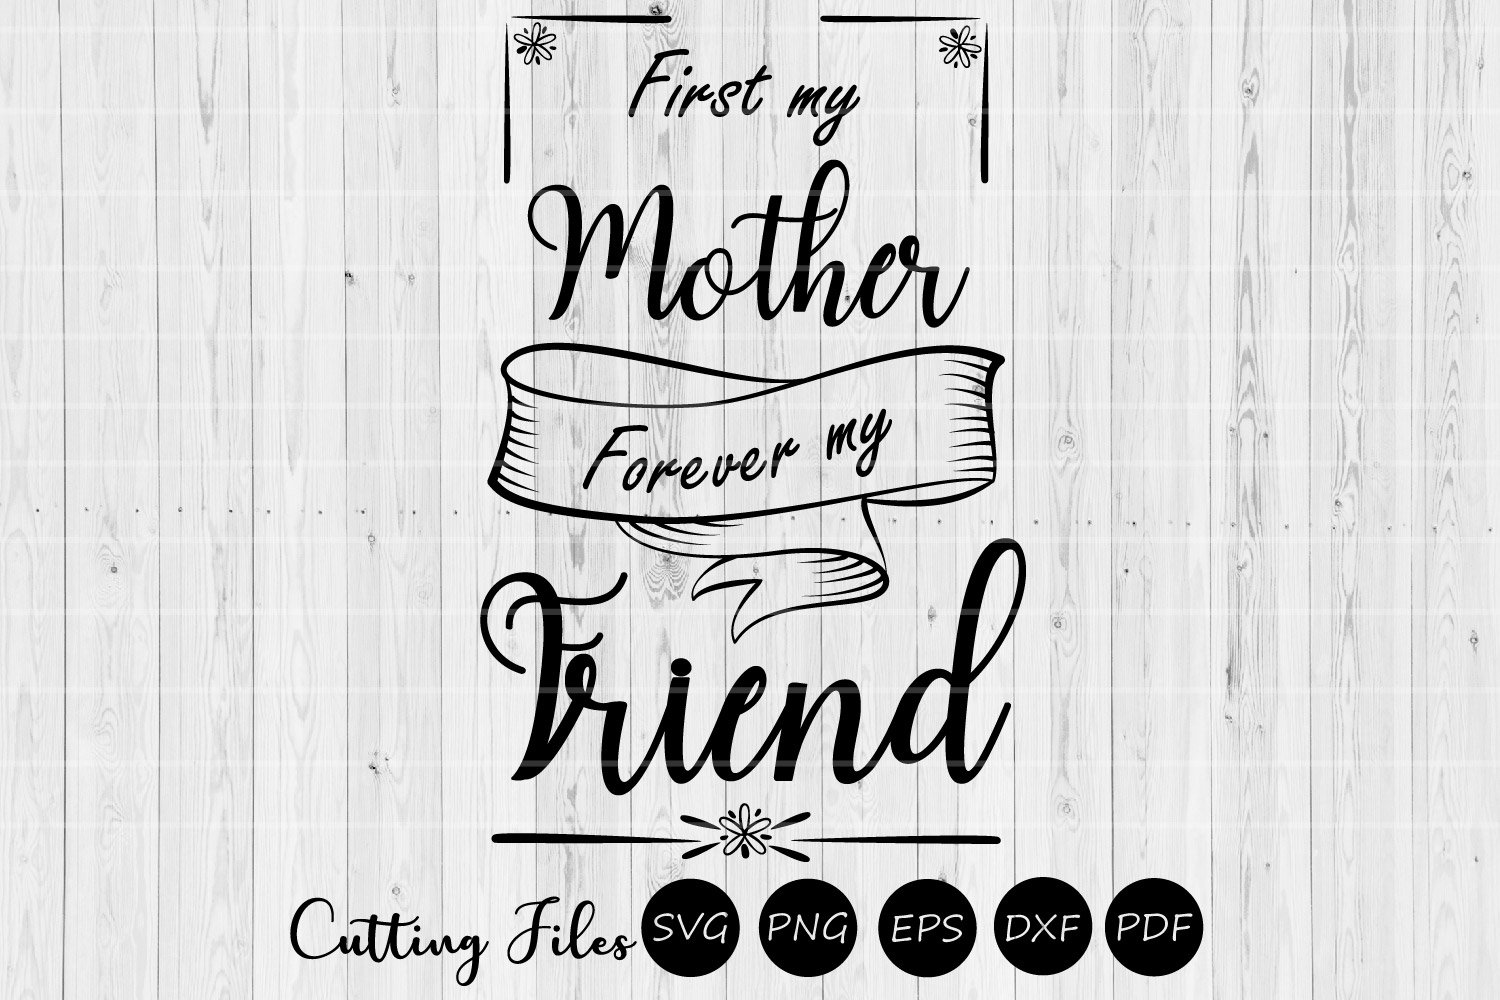 First my mother| Mothers day | SVG Cutting files | example image 1